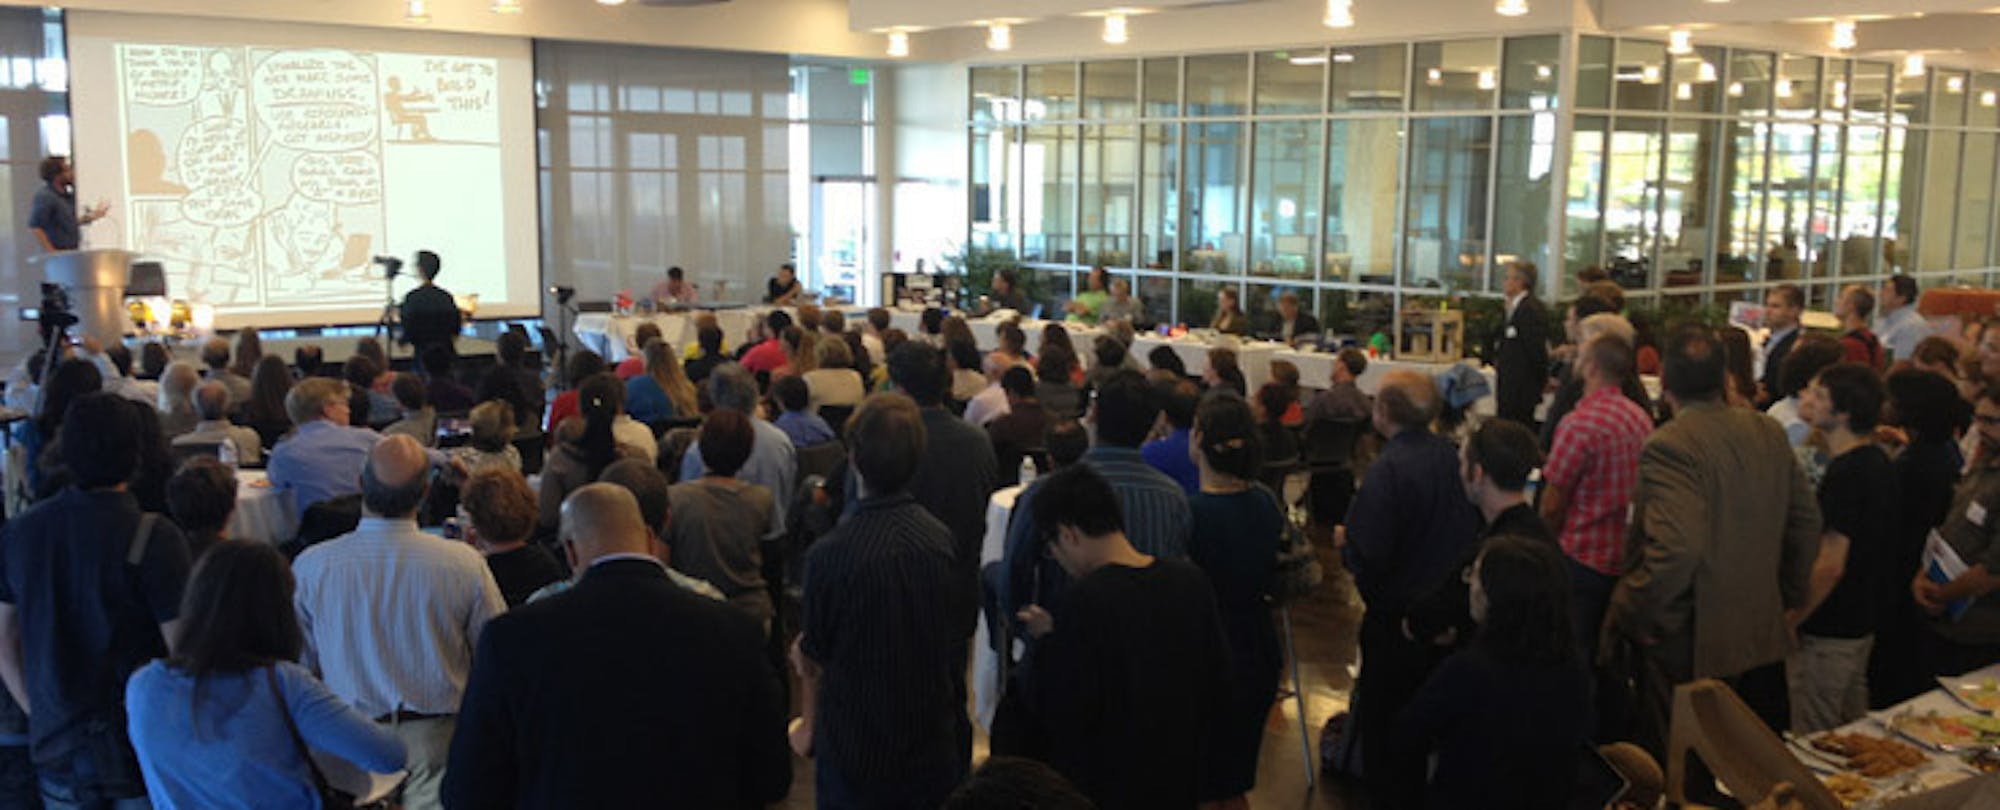 Makerspace kickoff event brings together Makers, U.S. Department of Education